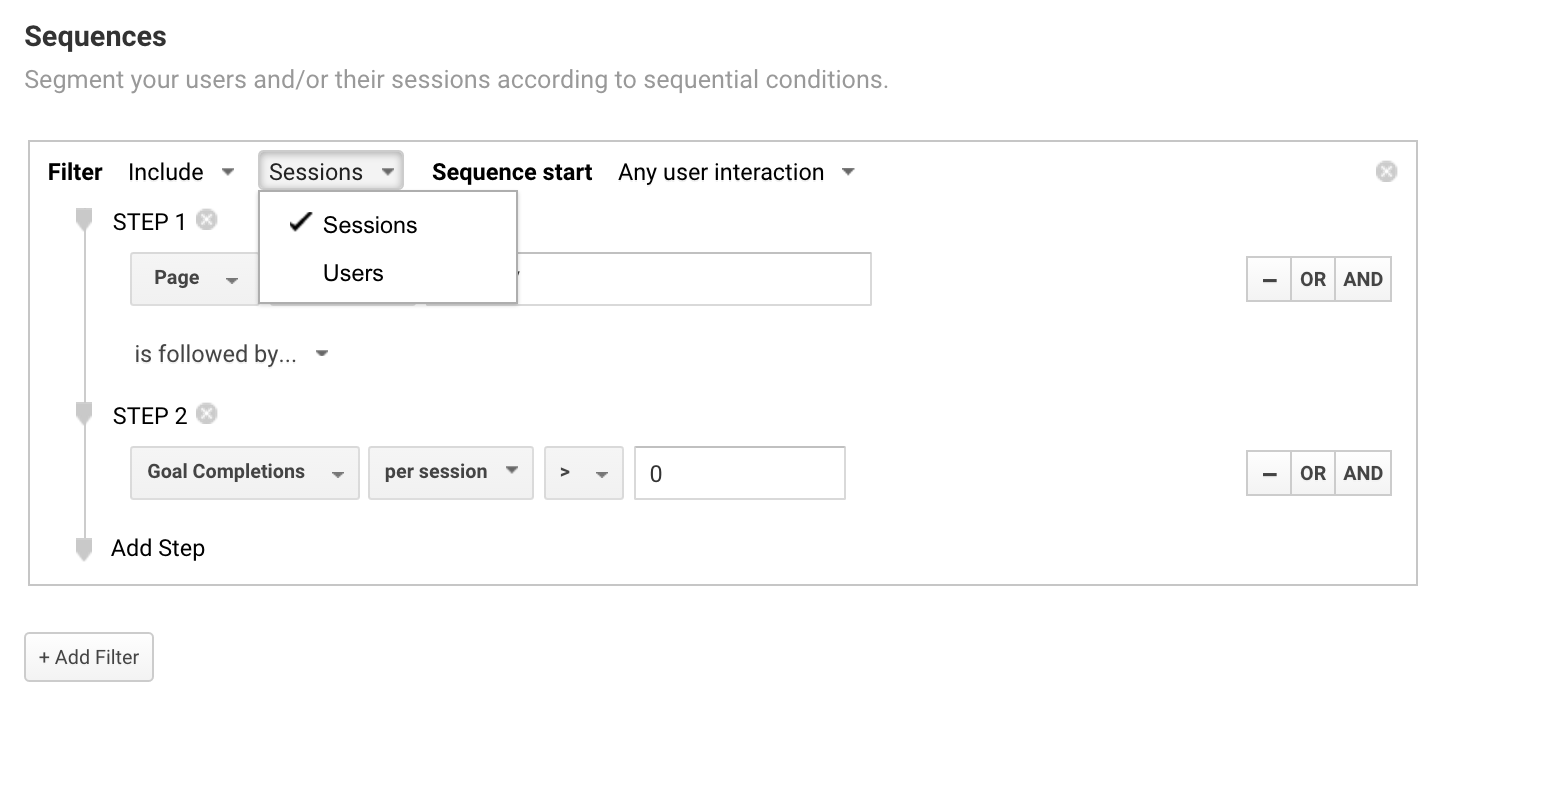 Session or user based sequential segments